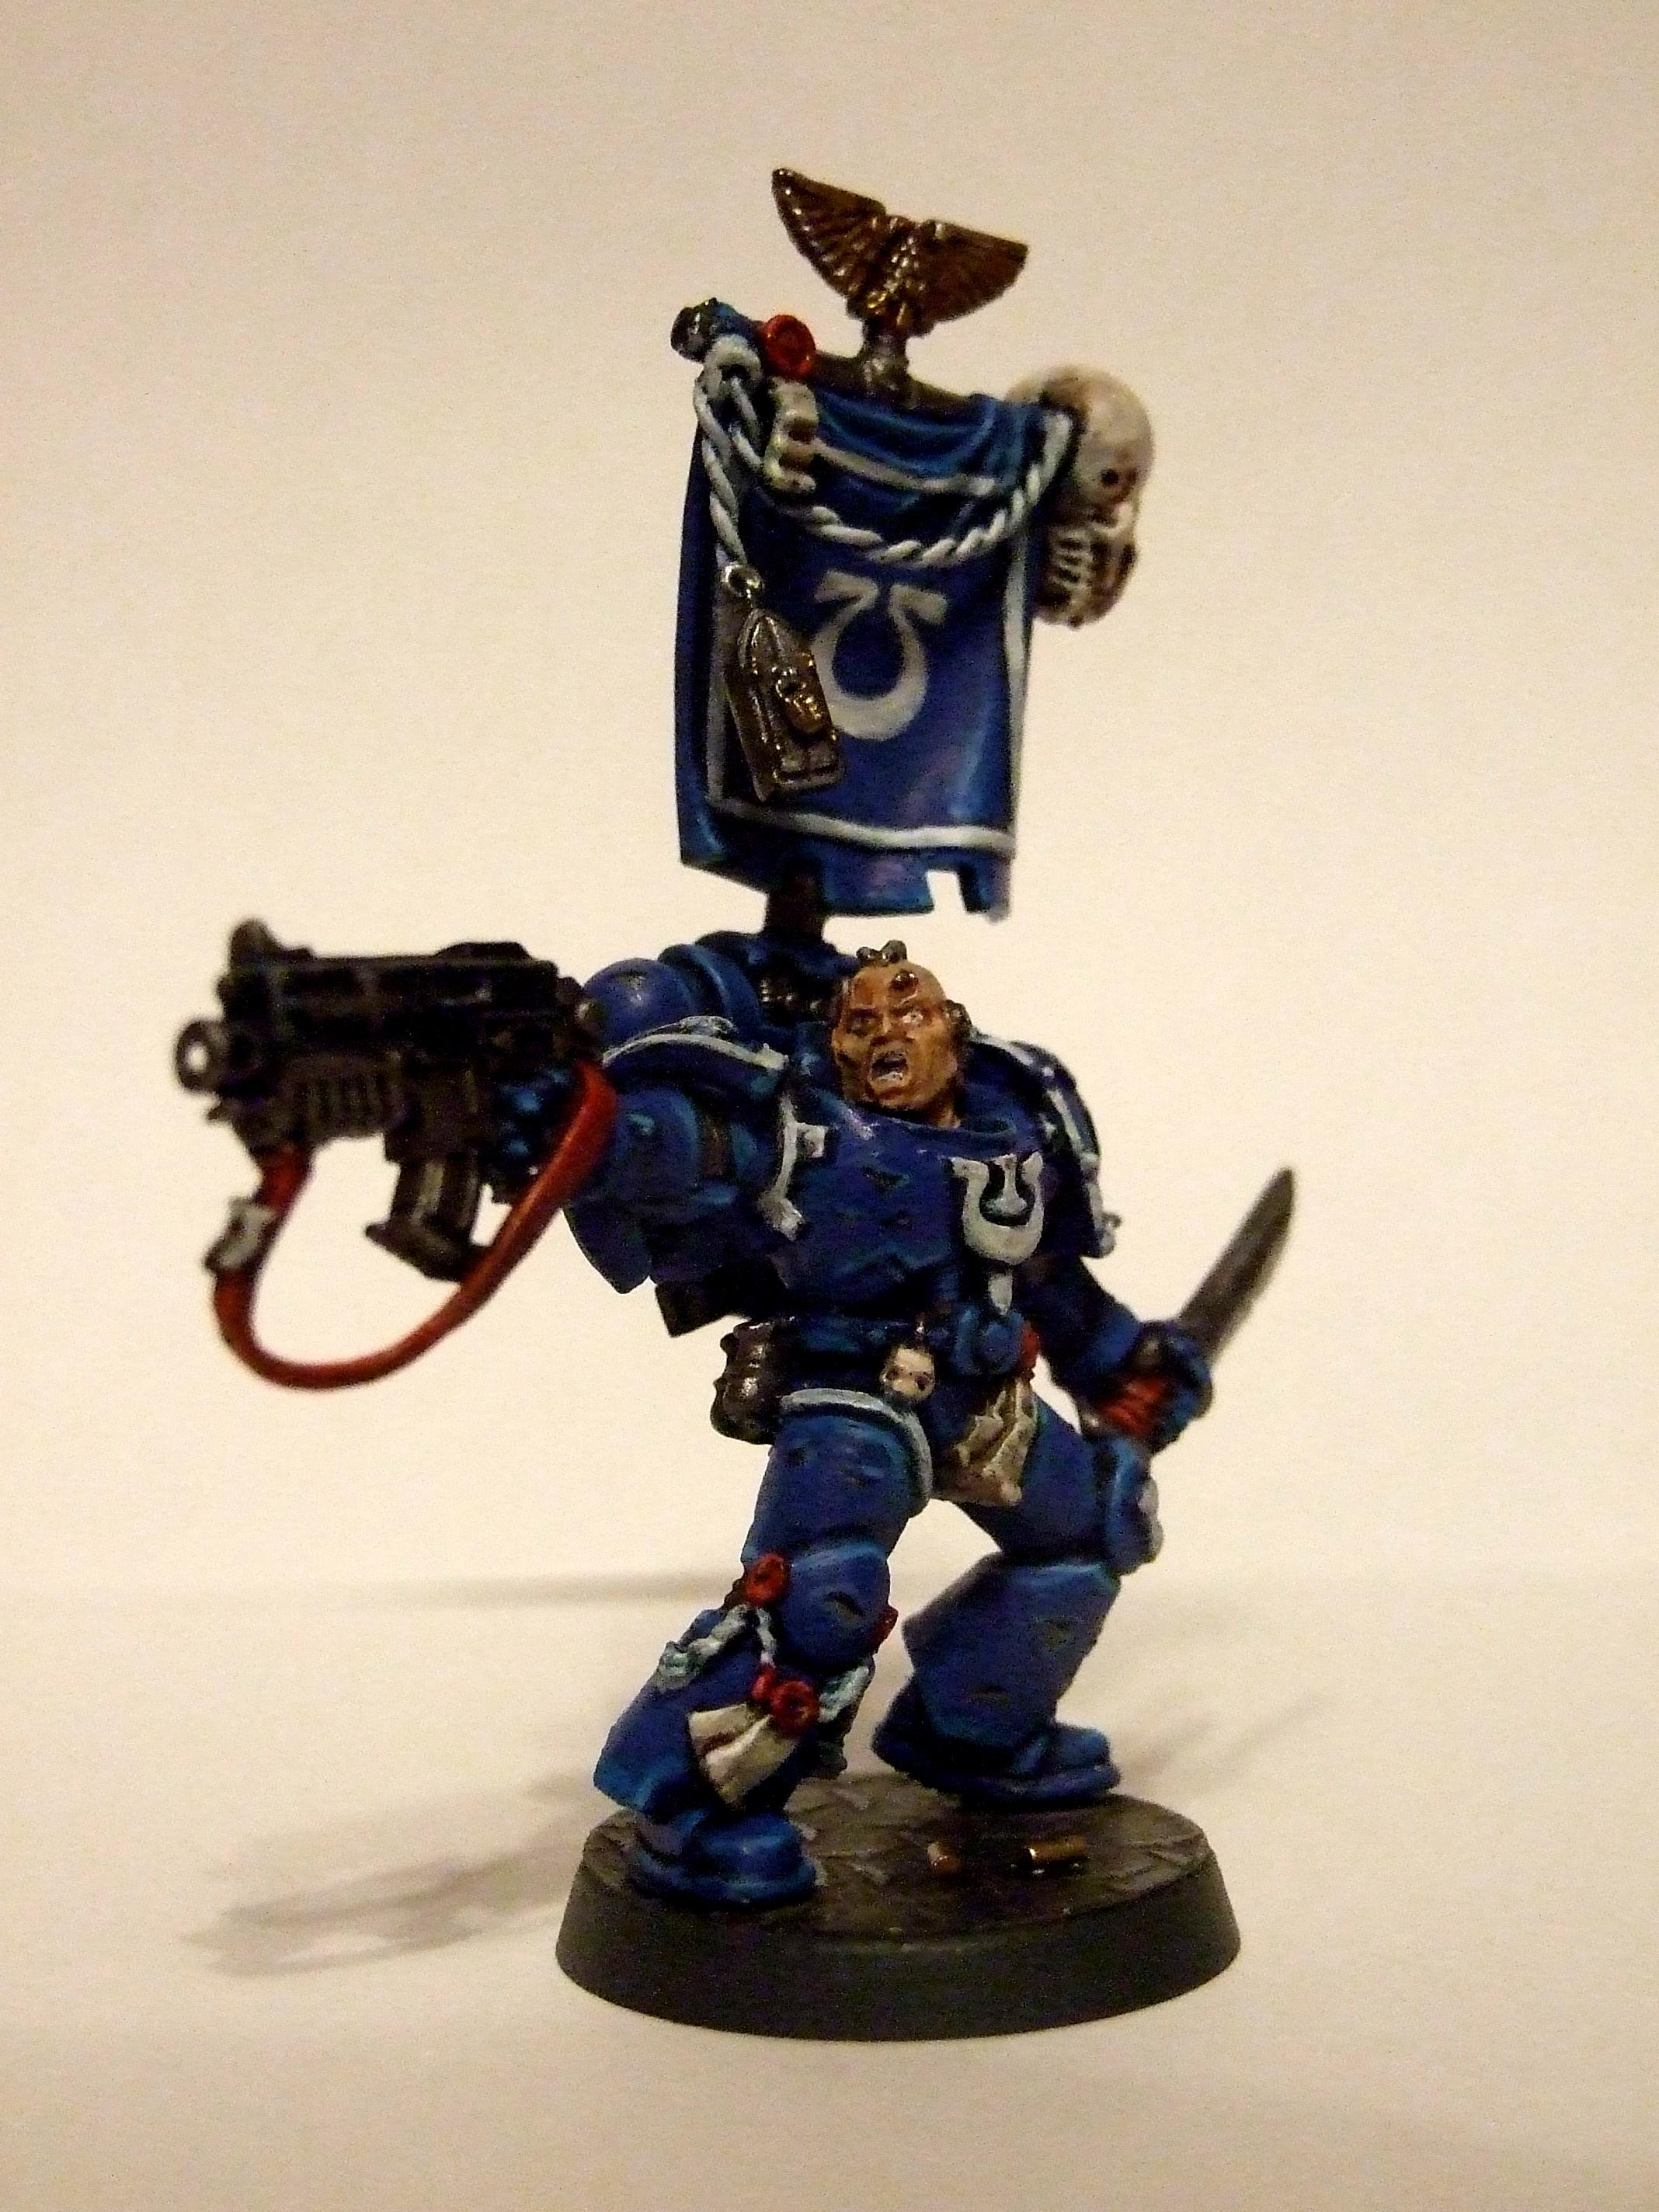 Banner, Battle Brother, Battle Damage, Bolter, Imperial, Seargent, Skull, Space Marines, Tyrannic War, Ultramarines, Veteran, Warhammer 40,000